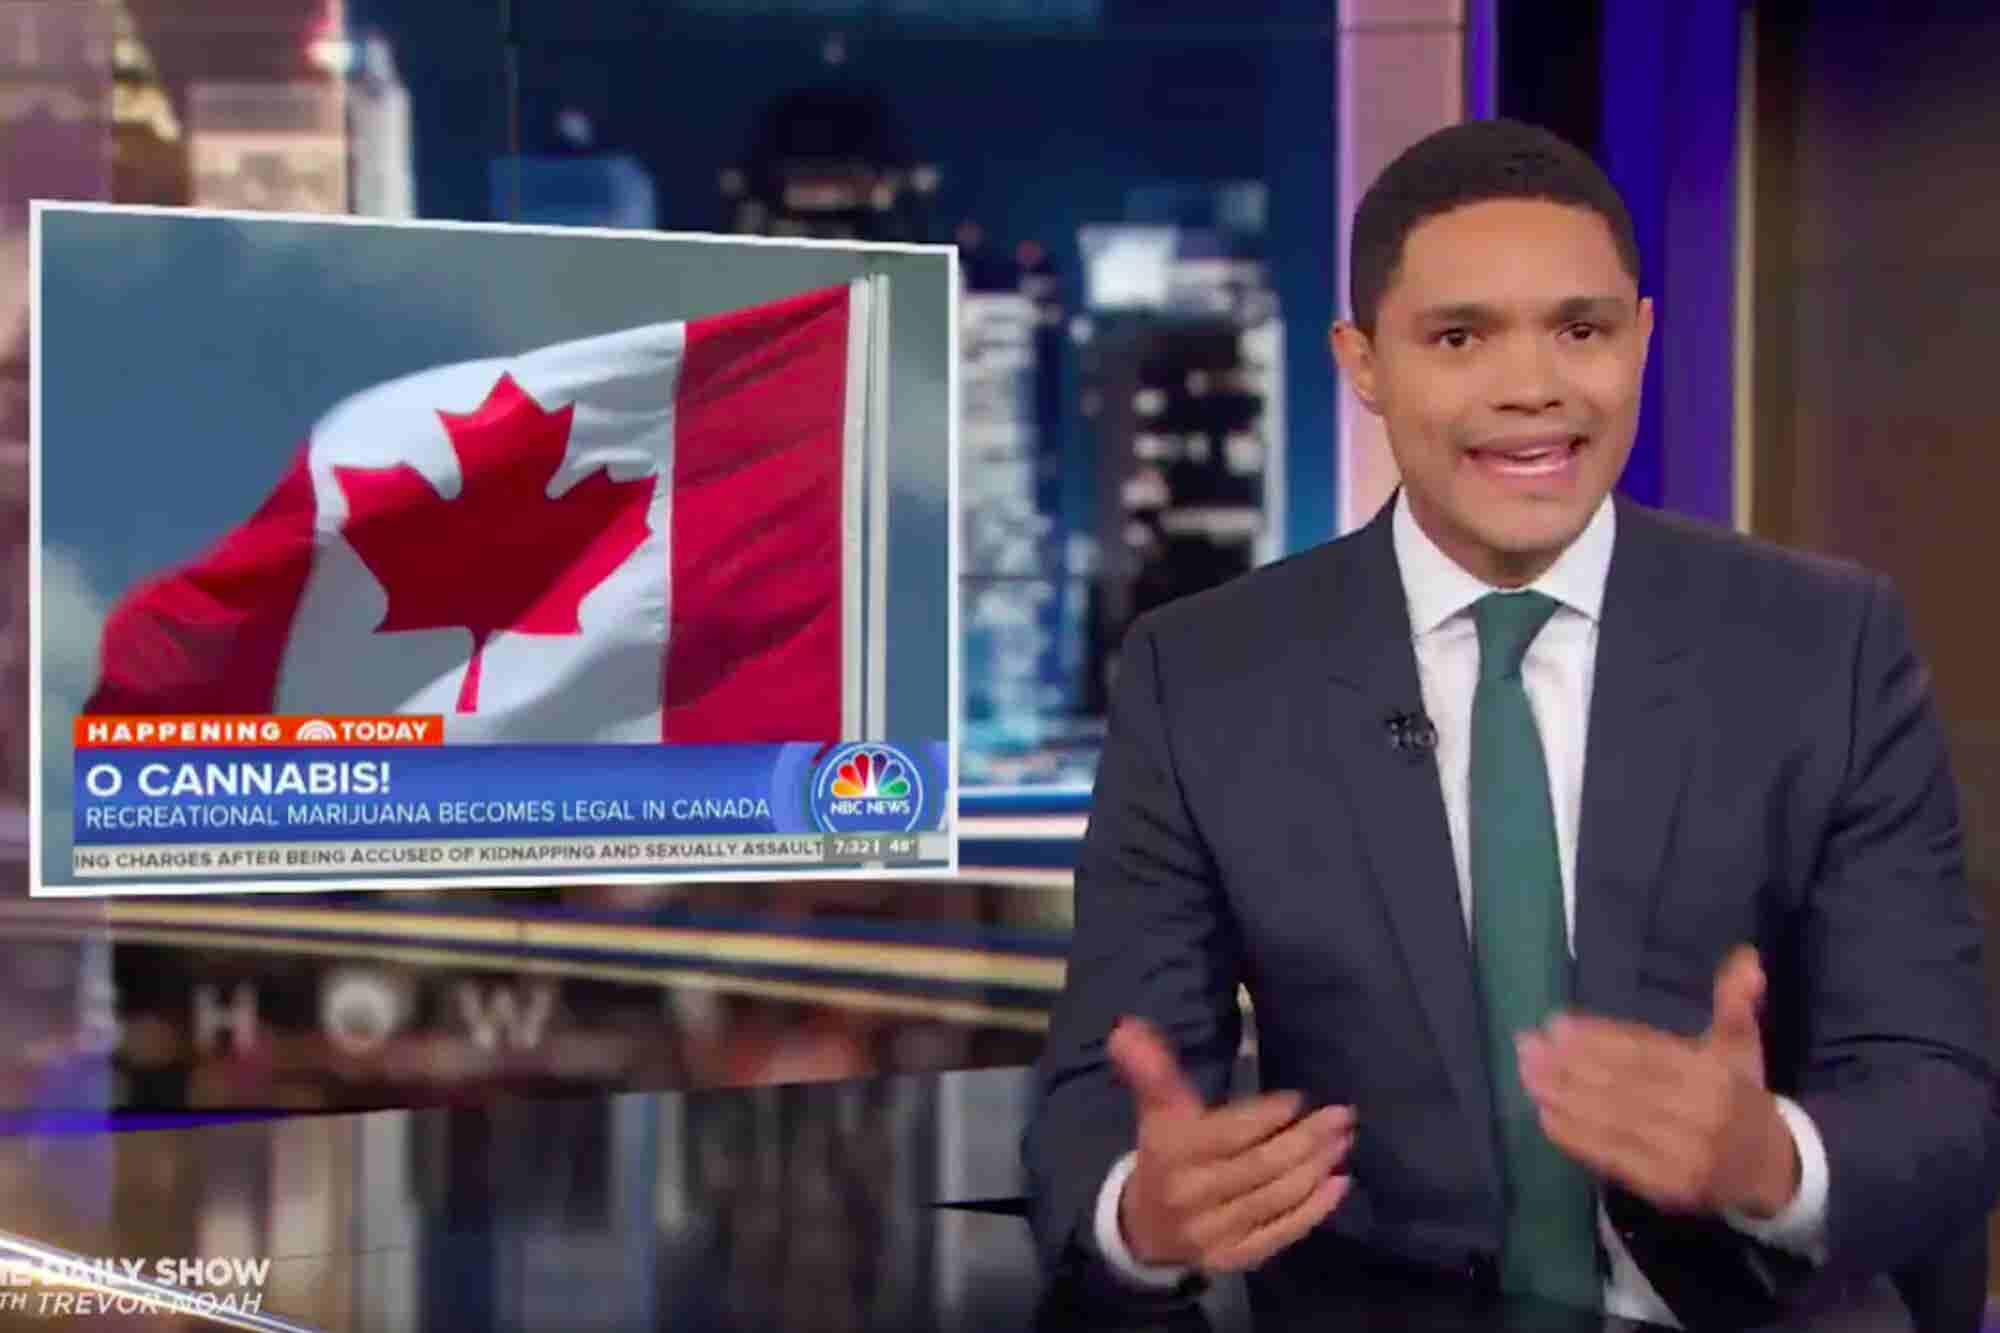 Trevor Noah's Take on Canadian Legalization? 'This Story Pisses Me Off'